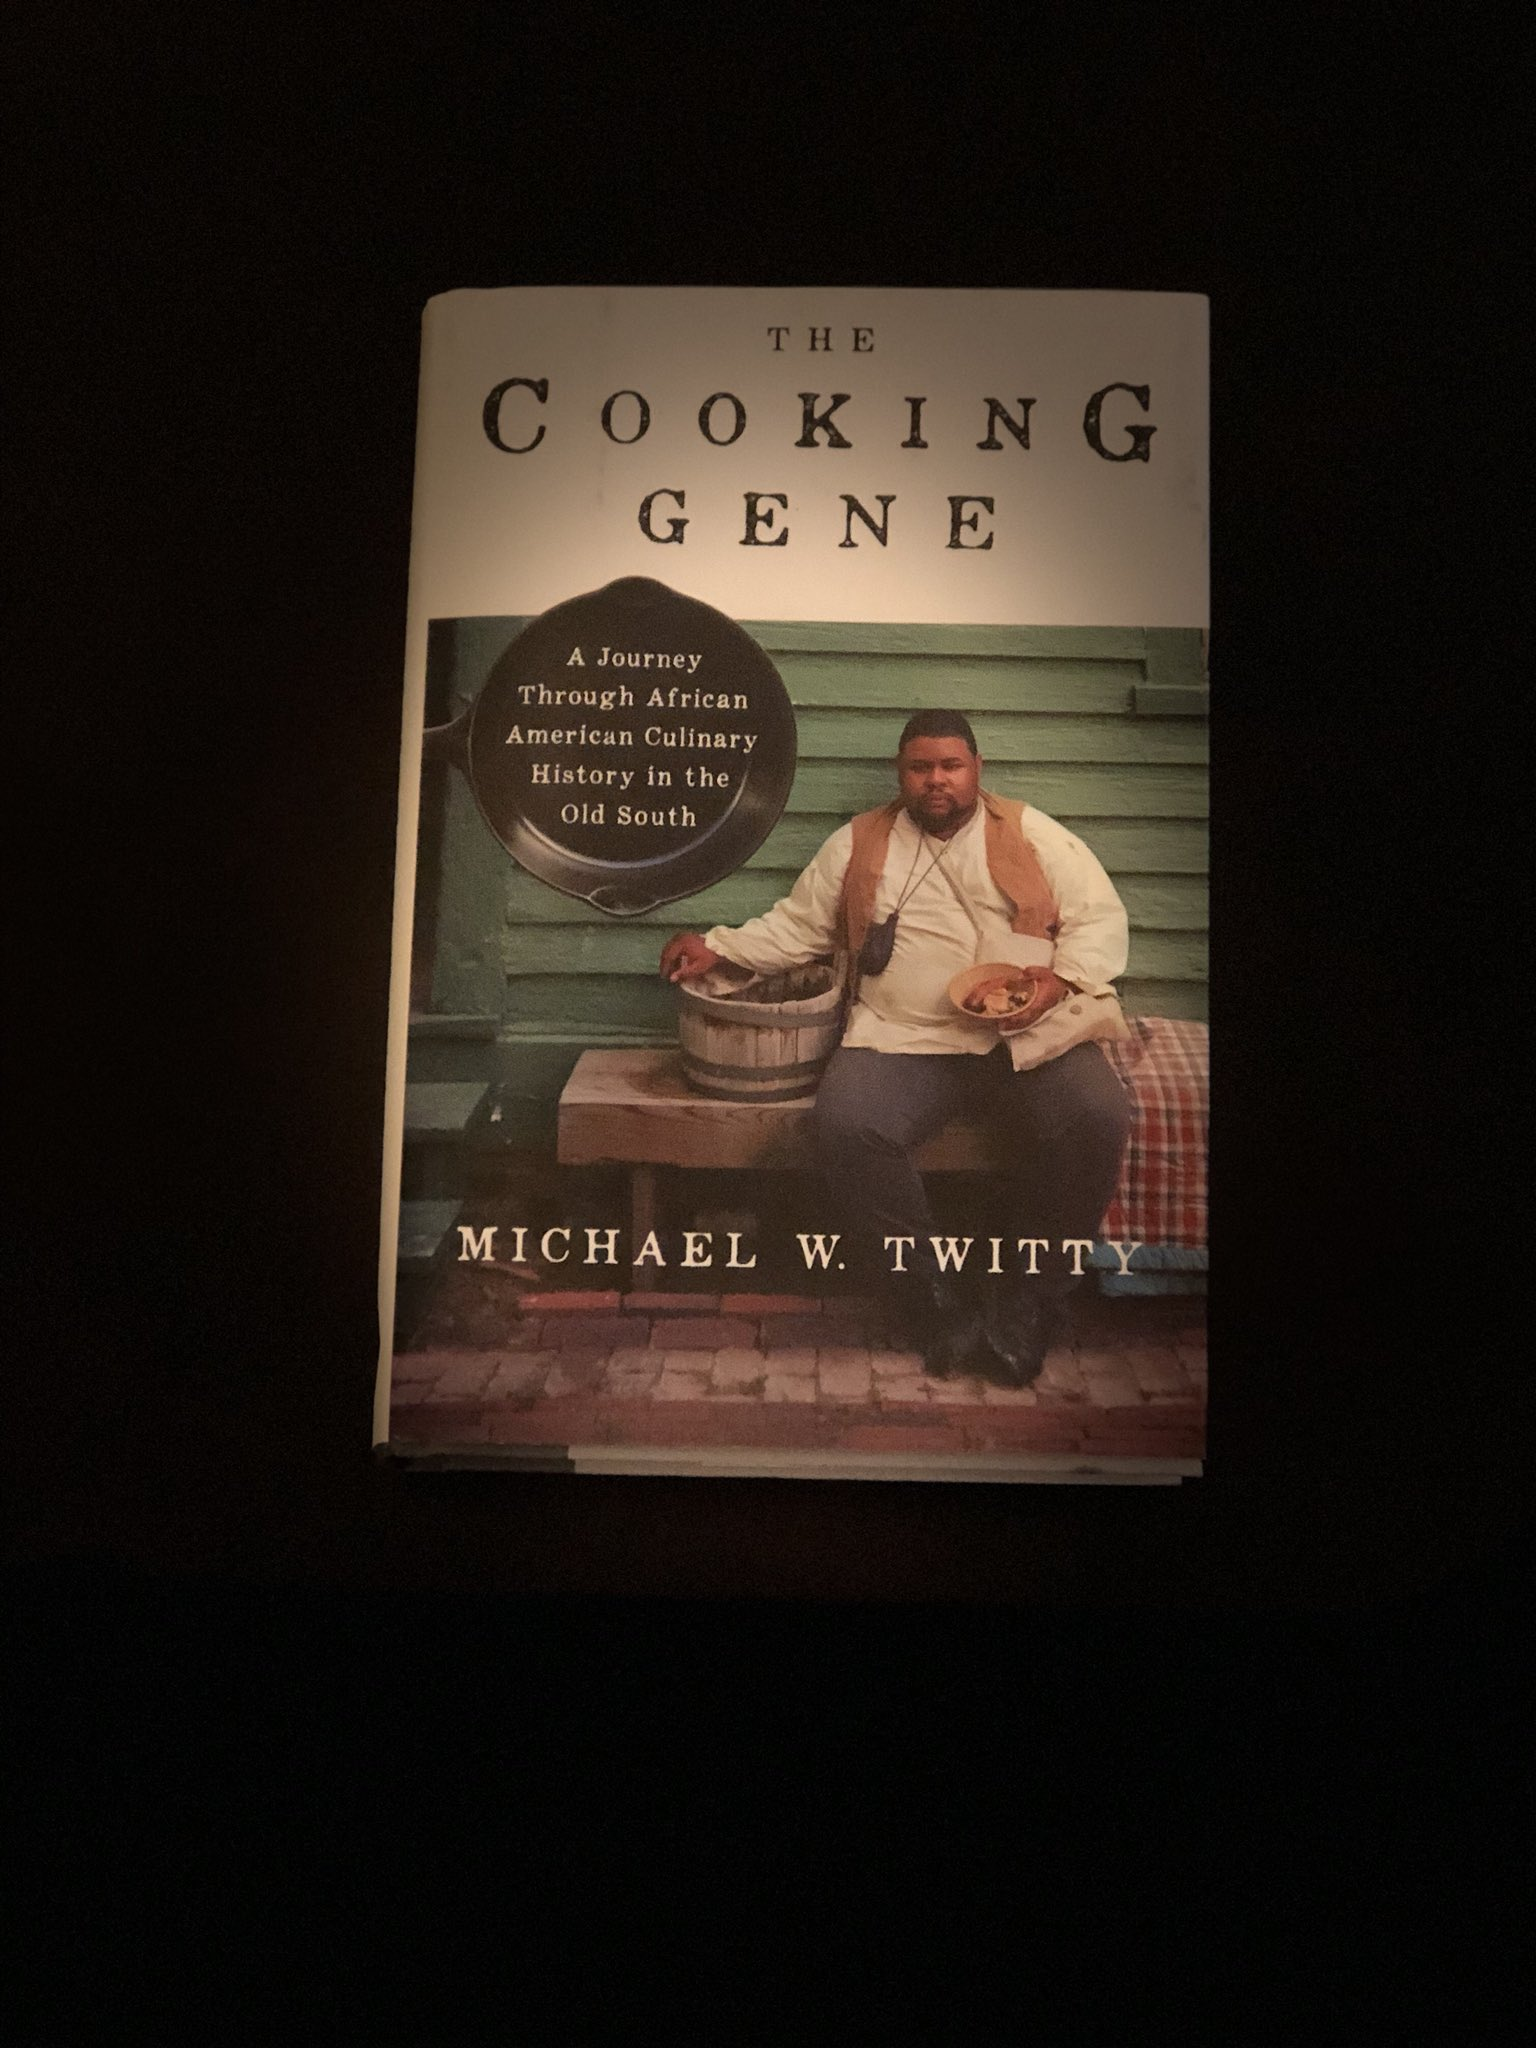 Michael Twitty Dishes About Cooking, History and Judaism | JewishBoston